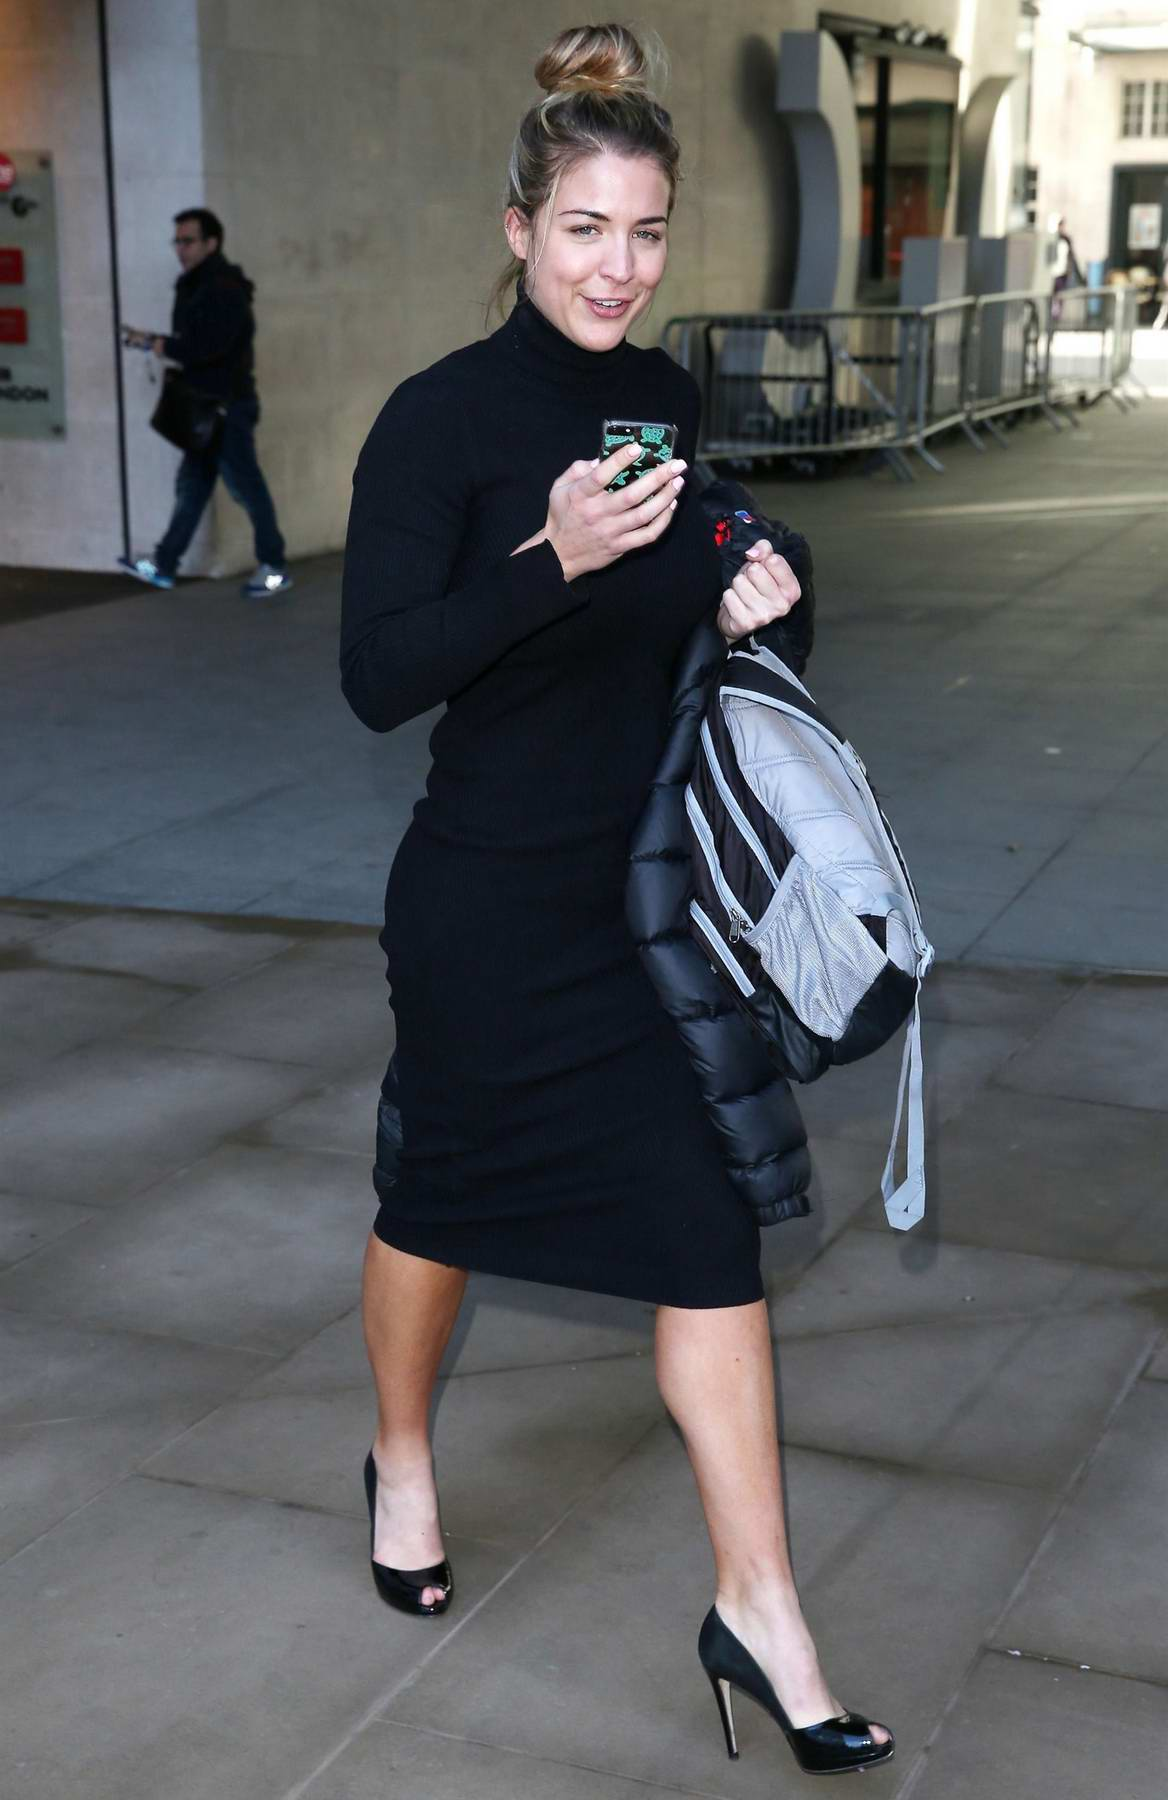 Gemma Atkinson leaving after attending a press conference the BBC studios in London